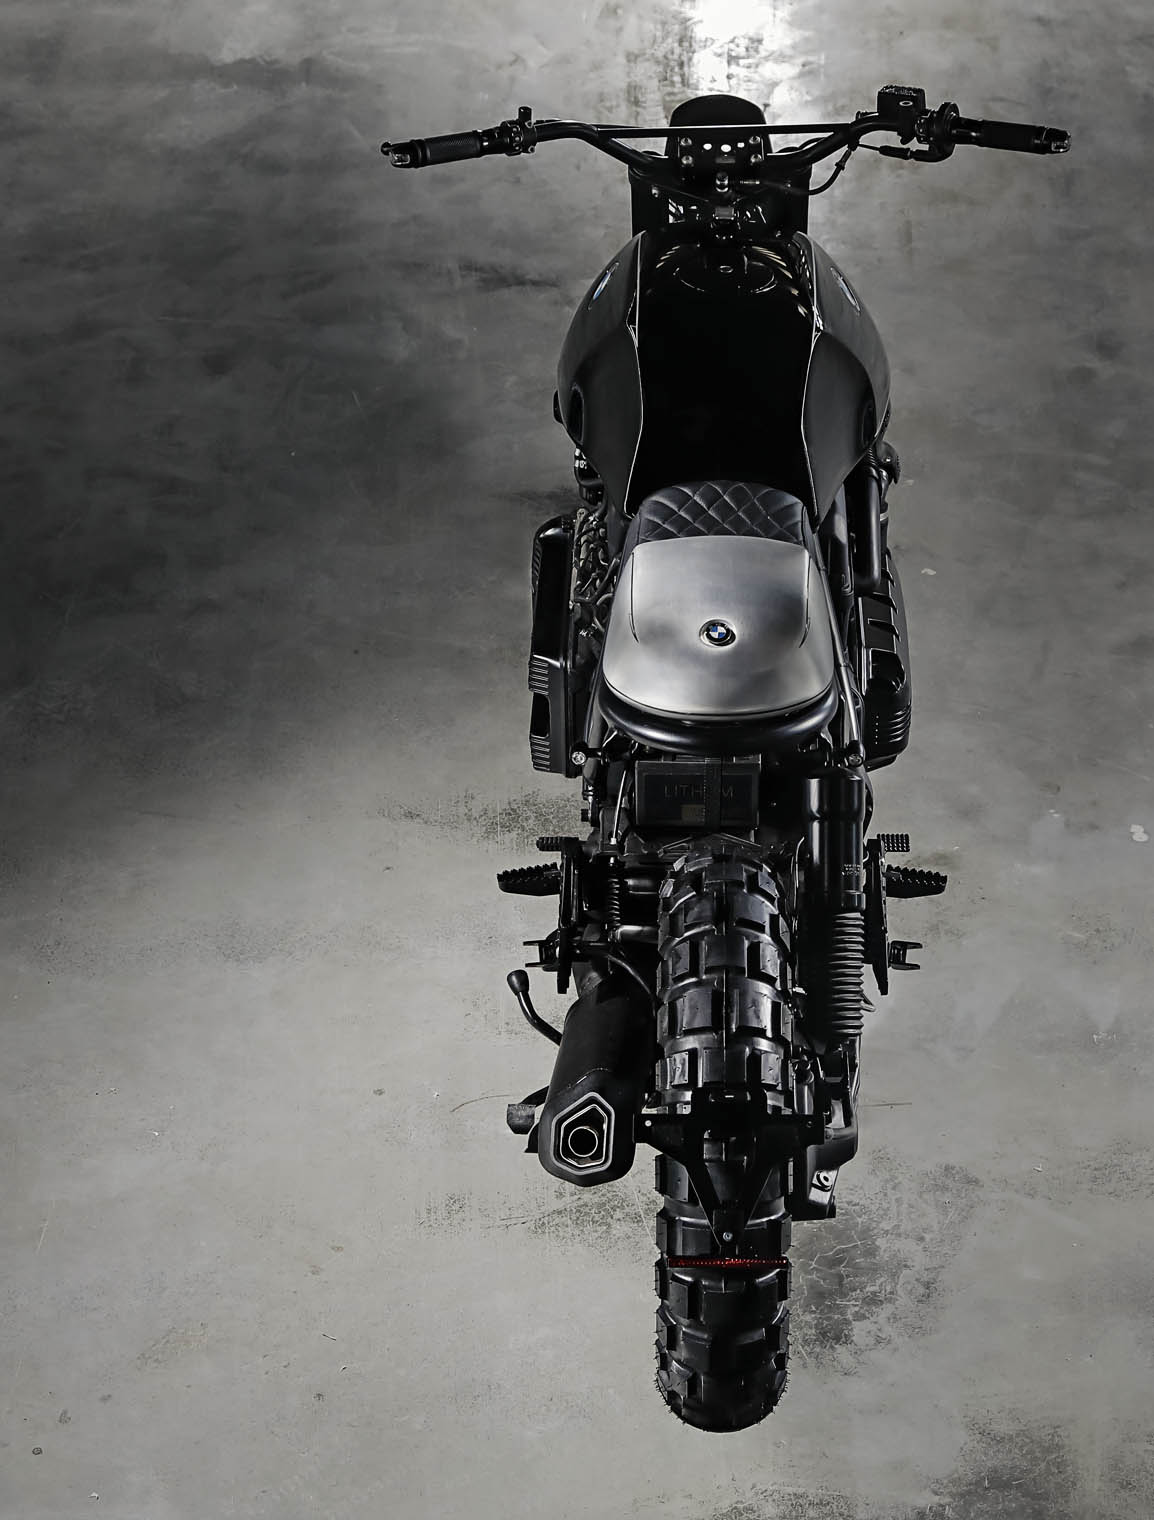 bmw_custom_titan_motorcycles_srambler_bmw_k100_xaver_back